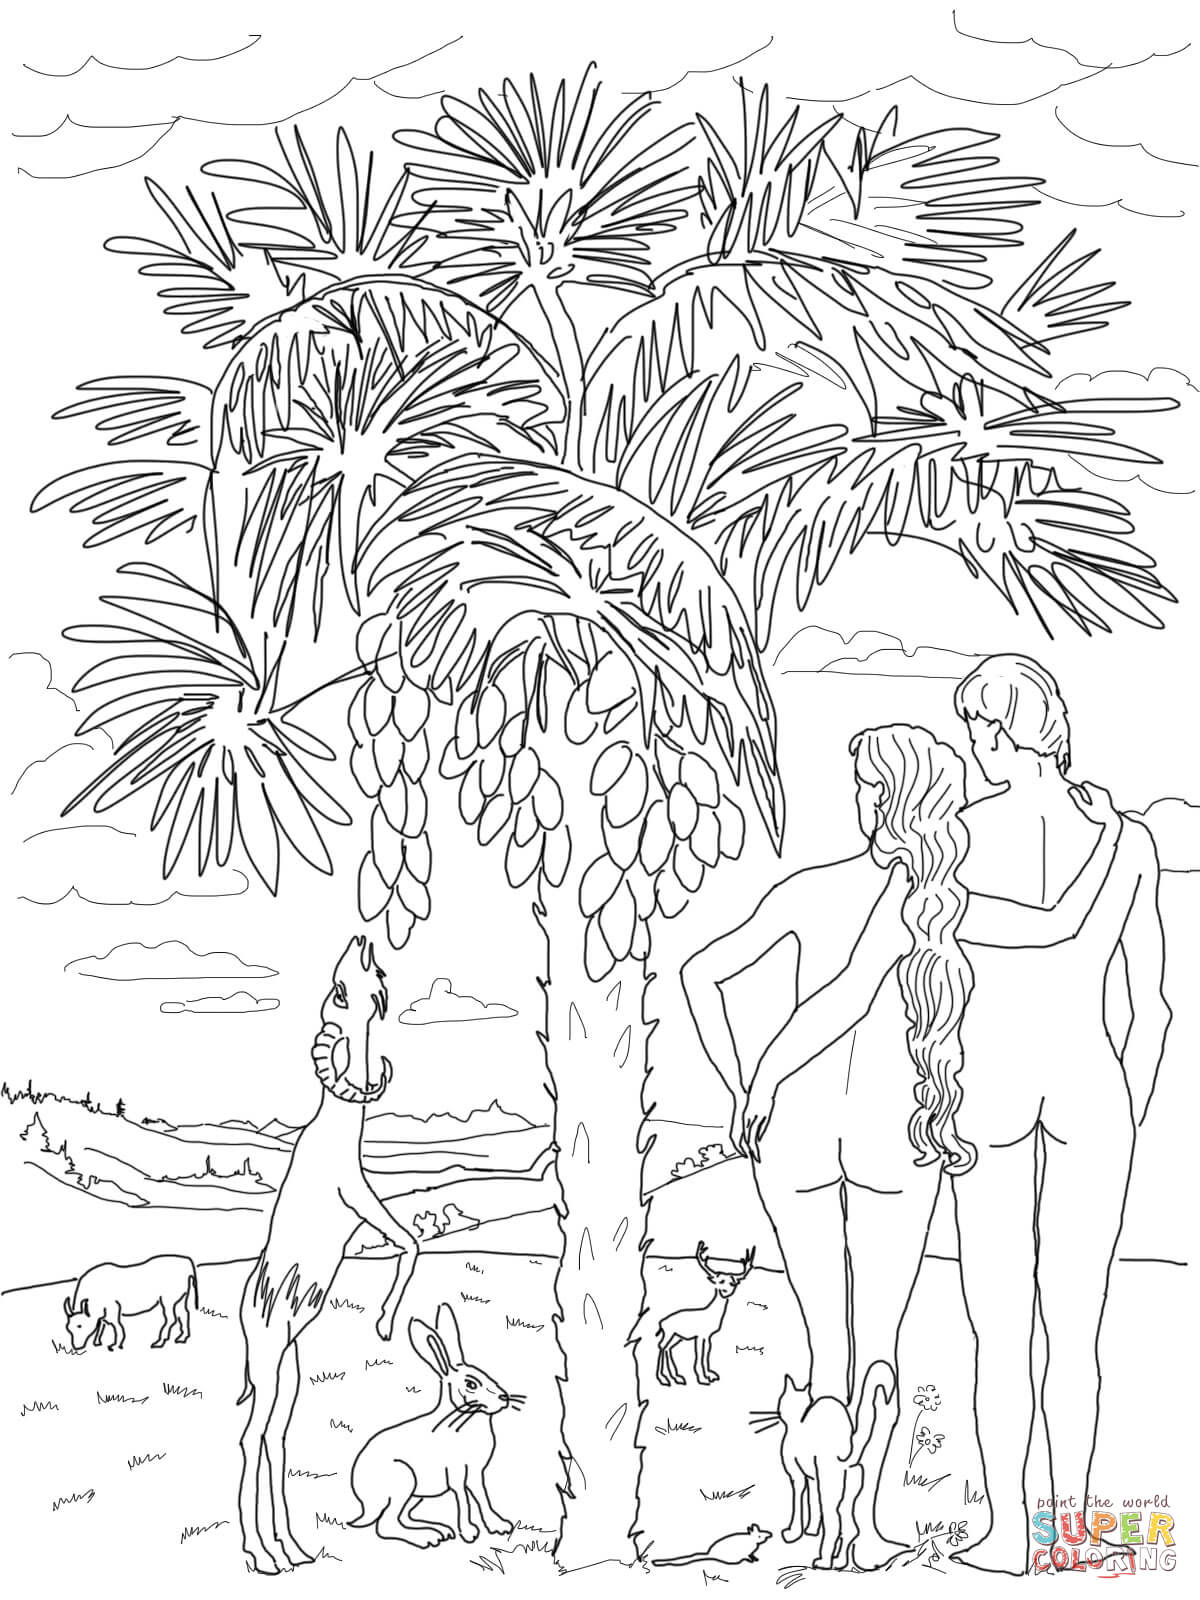 coloring sheet 6 days of creation drawing 6th day of creation coloring pages stackbookmarksinfo coloring sheet drawing of creation days 6